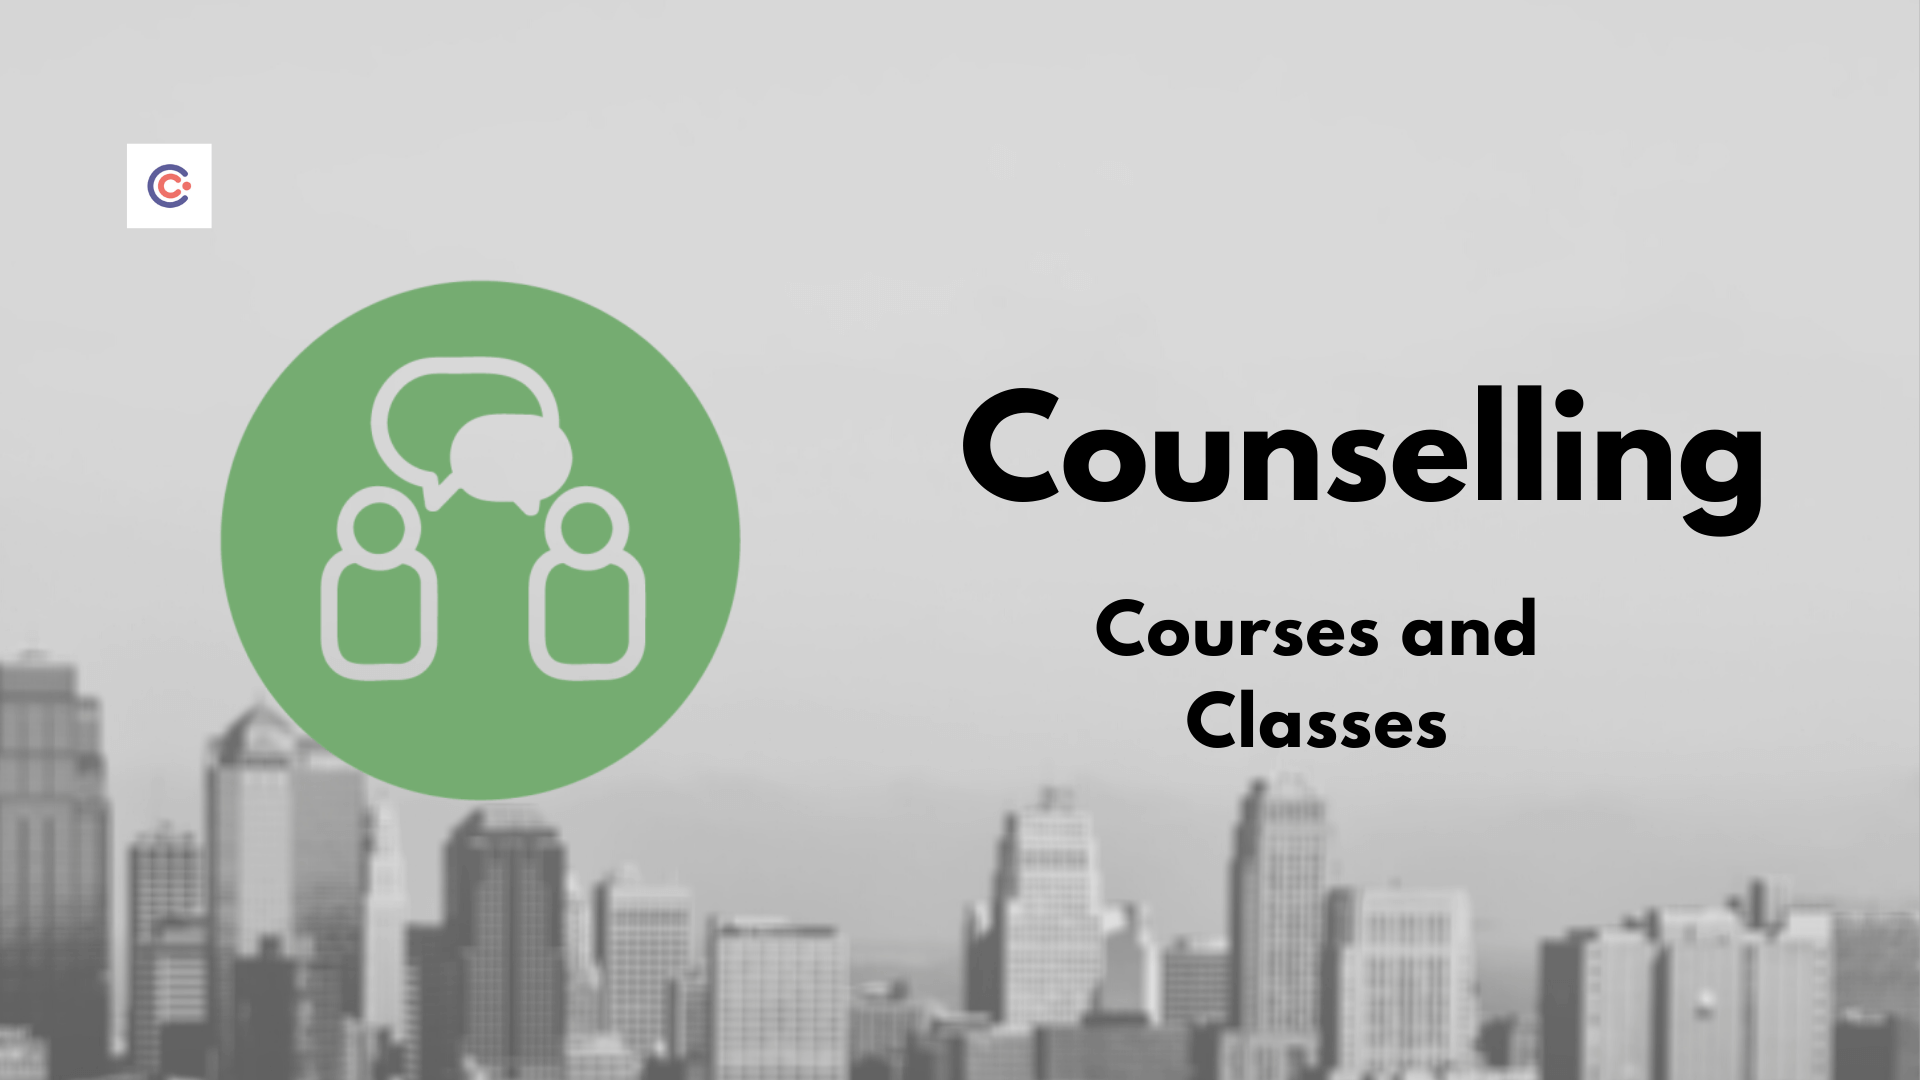 6 Best Counselling Courses and Classes - Learn Counselling Online